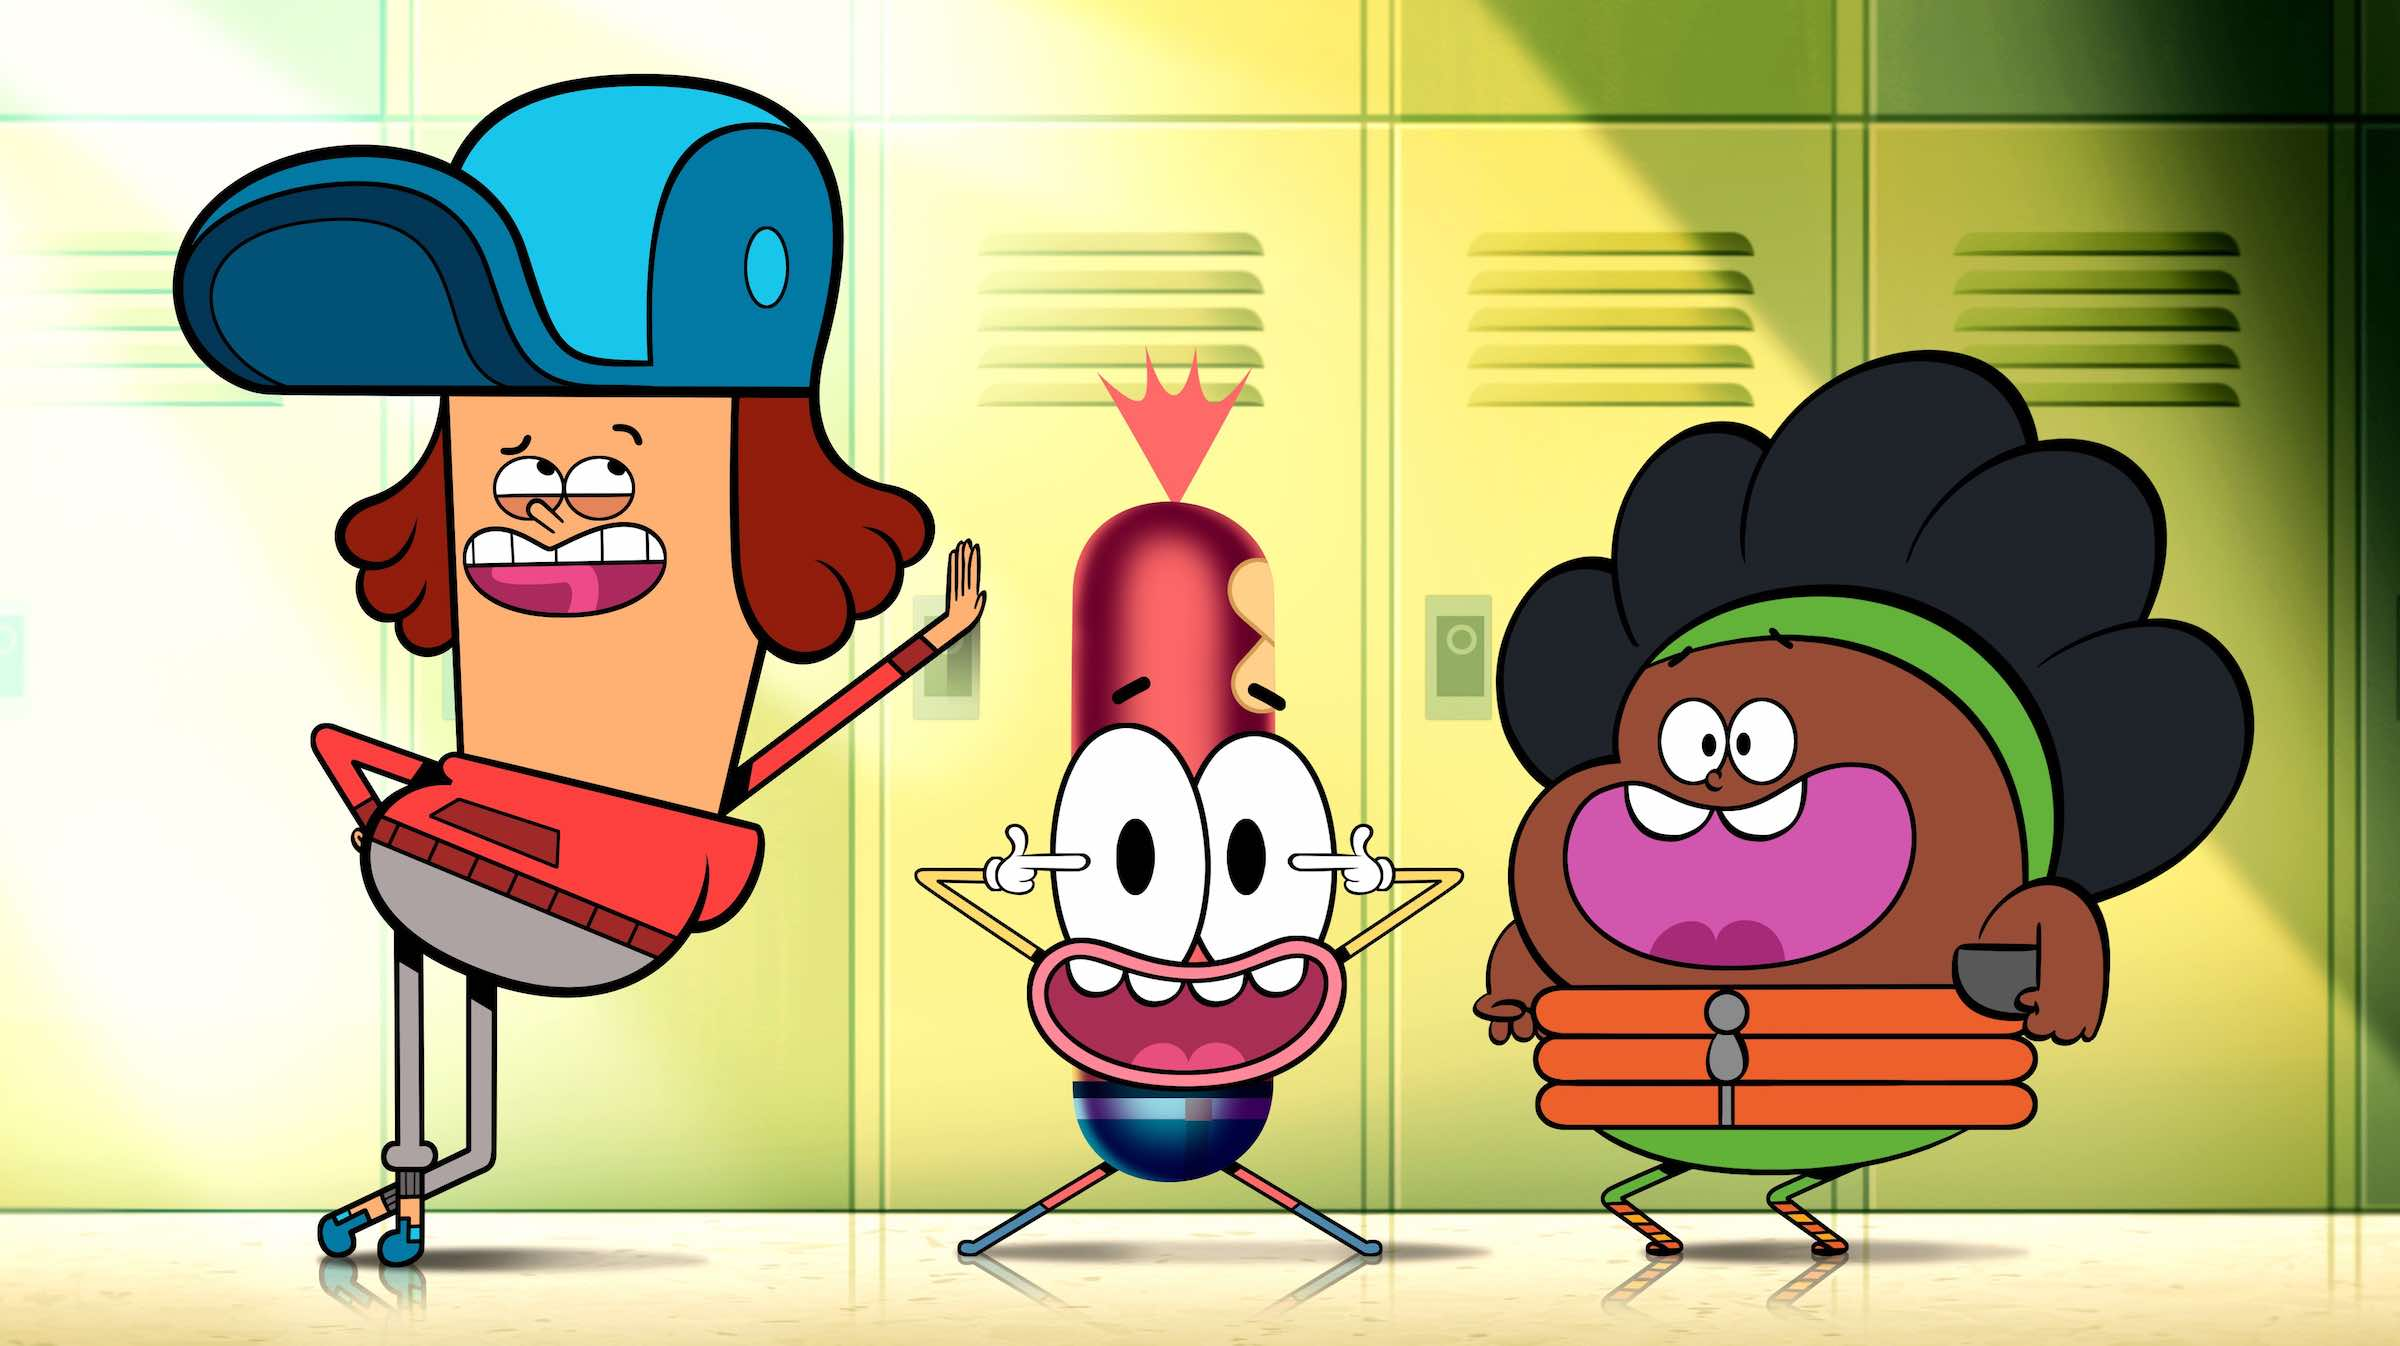 Yet another offbeat animation hoping to fill the gap left by Cartoon Network's Adventure Time, Pinky Malinky follows the life of a socially awkward high school student who happens to be a hot dog.